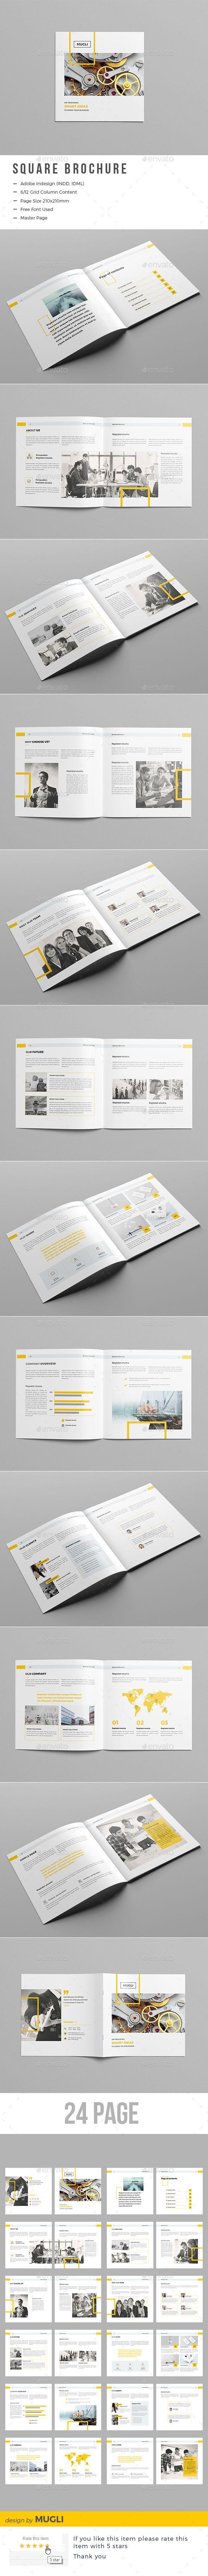 The Square Brochure | Indesign templates, Brochures and Template